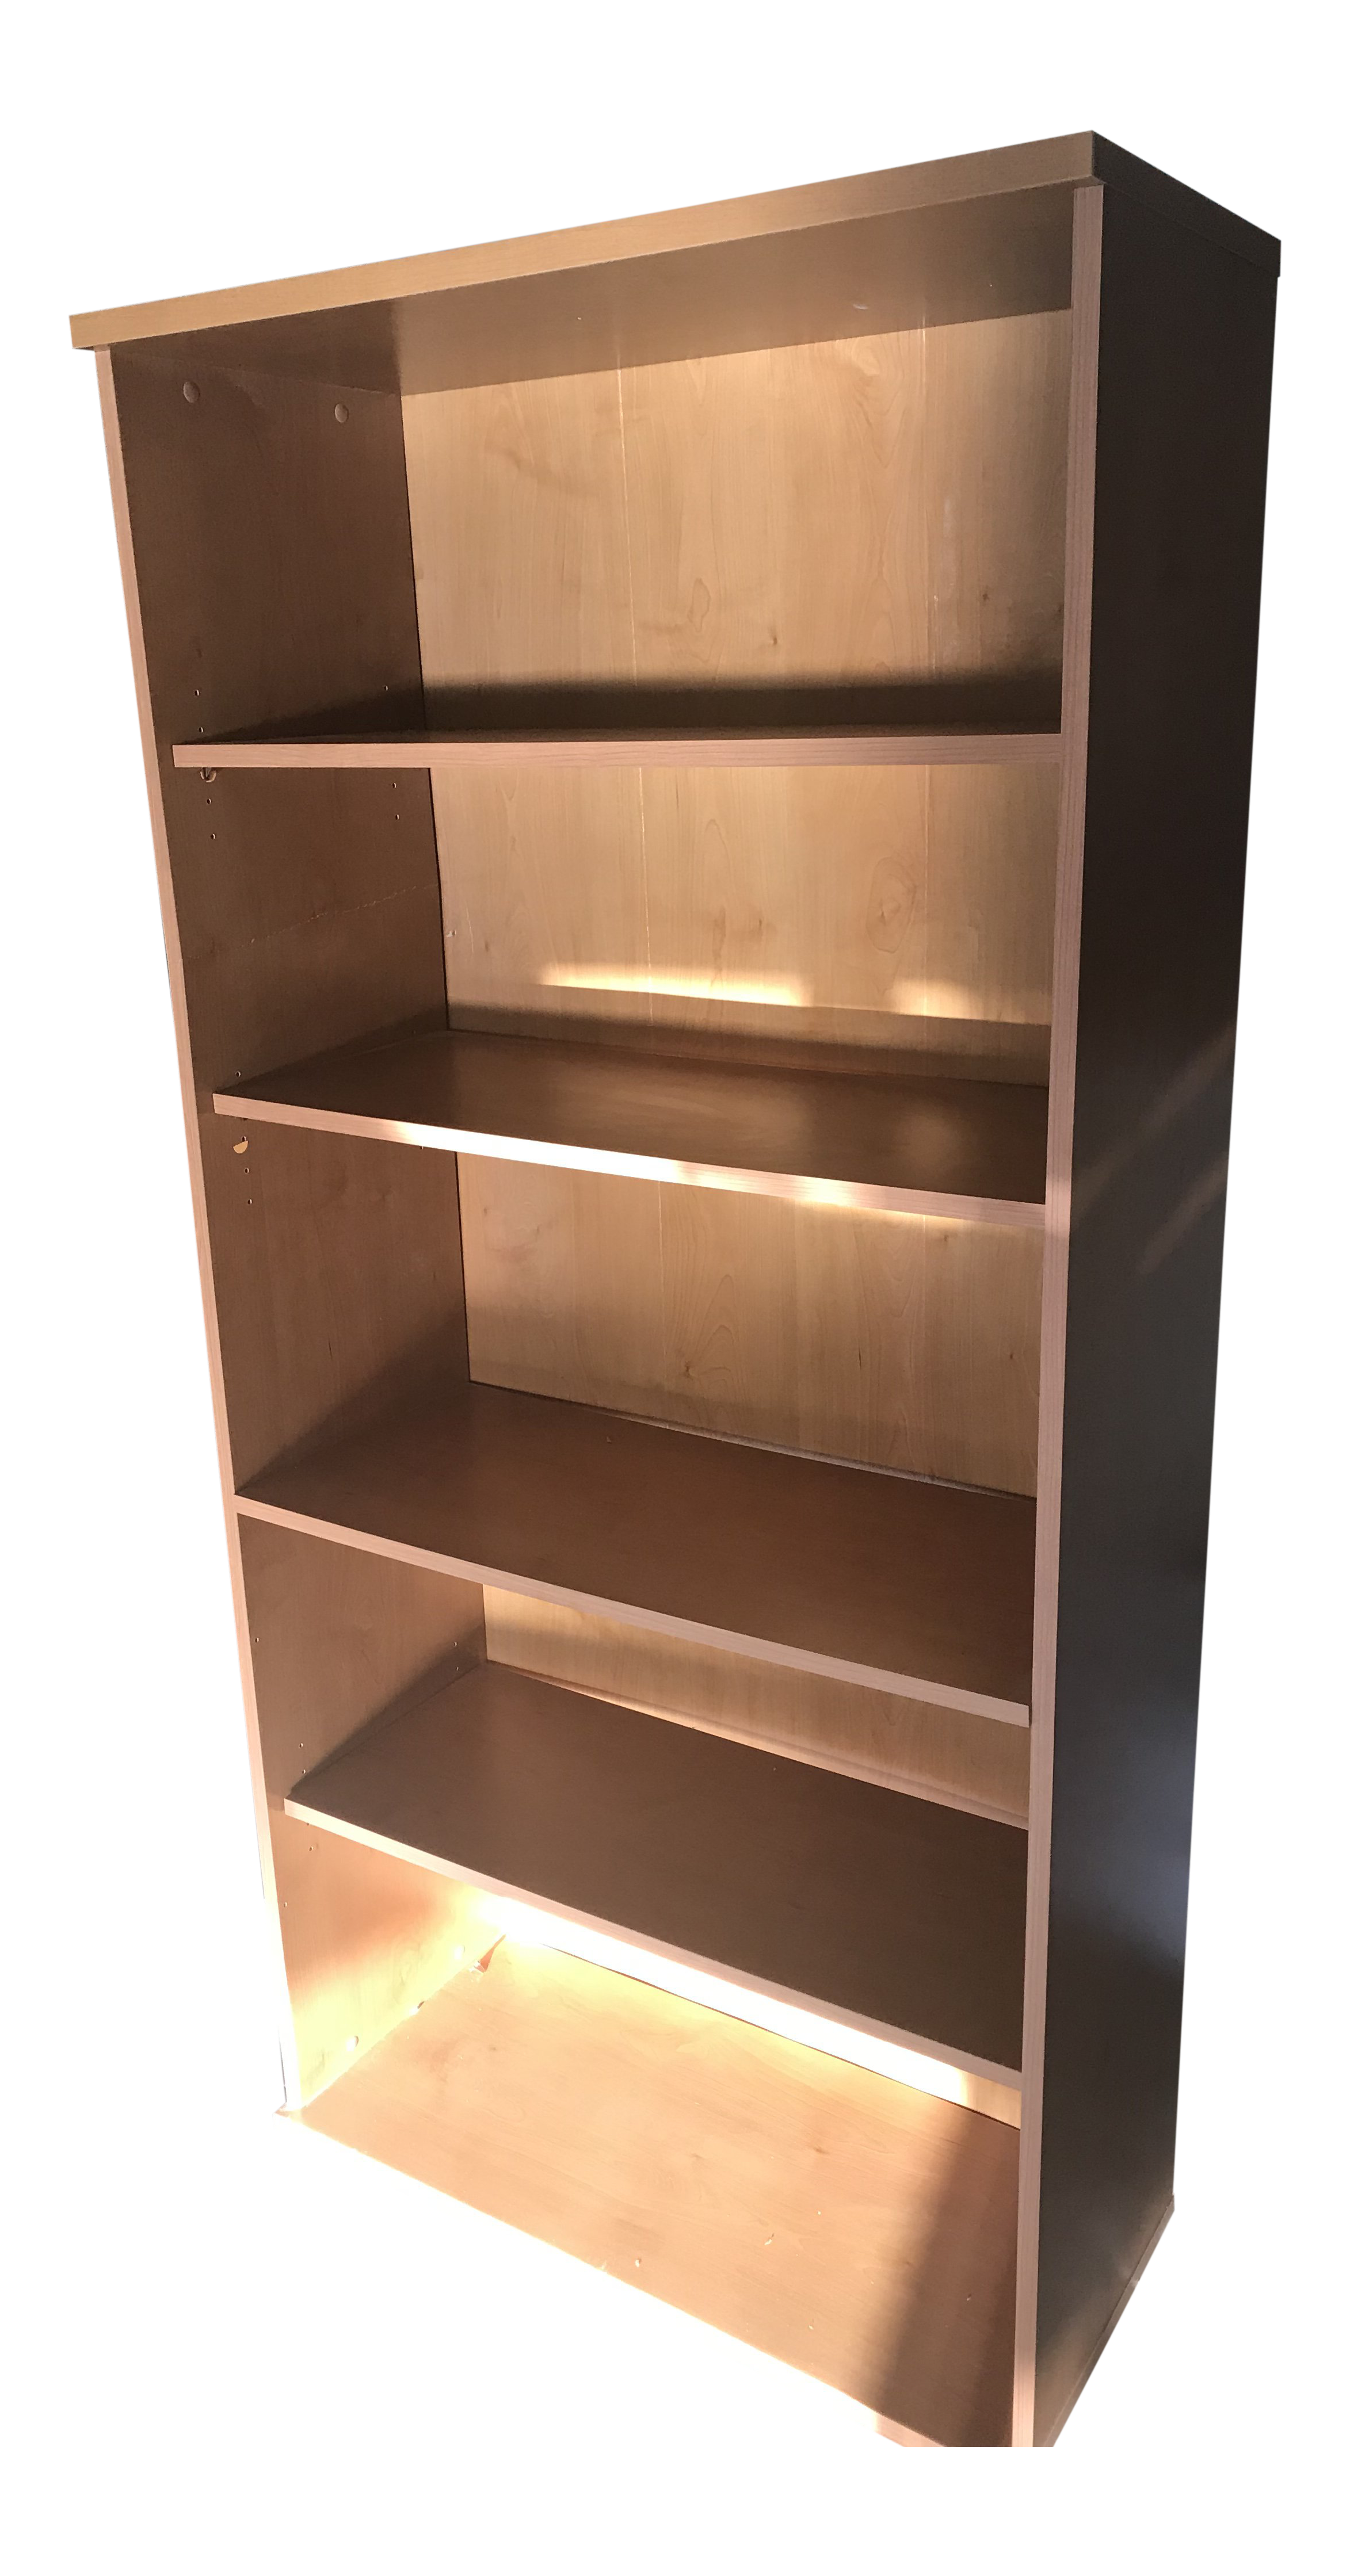 Cherry Laminated Wood Finish, 5 Adjustable Shelf Bookcase